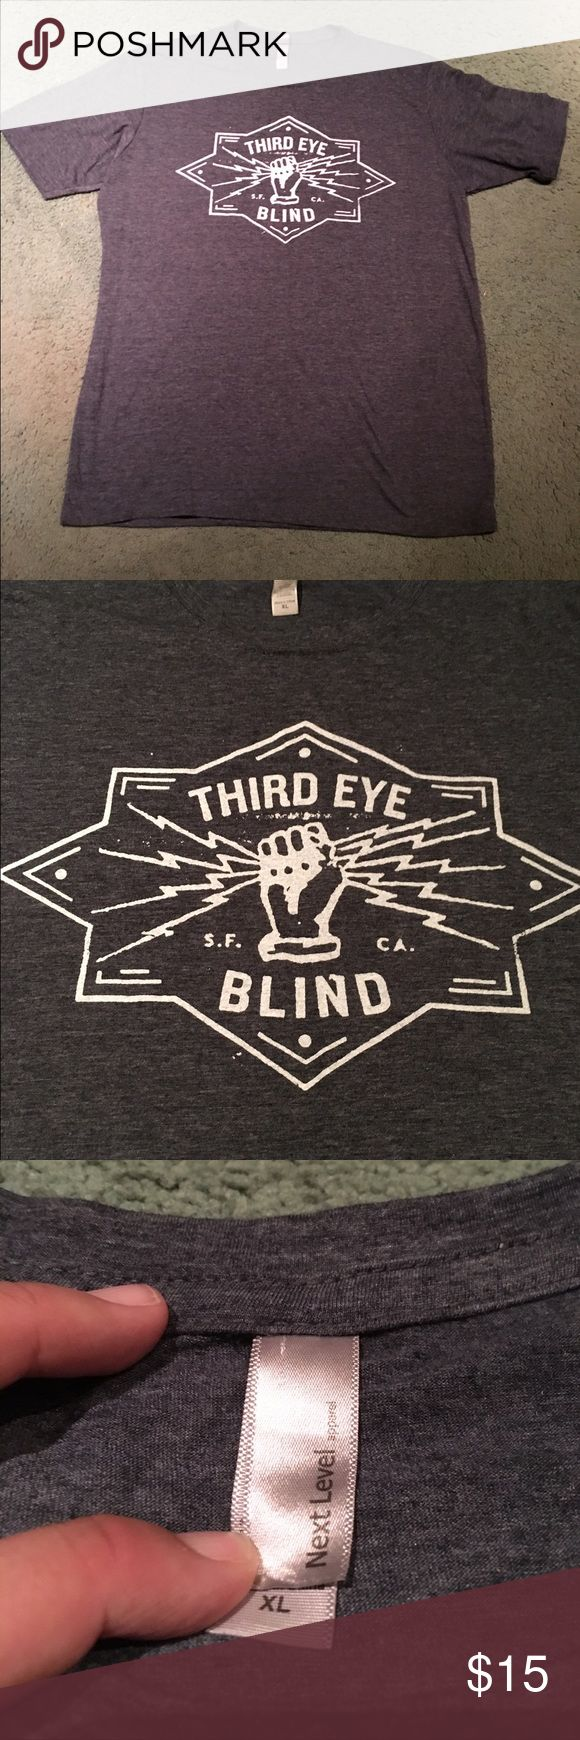 Third Eye Blind T-Shirt * Third Eye Blind t-shirt. T-shirt brand is Next Level Apparel.   * Pre-owned- great condition, no holes or stains.  * Made of 65% polyester & 35% cotton.  * Size XL.  * Measurement: Underarm to underarm flat across is approximately 22 1/2 inches. Back of neck to bottom of hem is approximately 29 inches. Third Eye Blind Tops Tees - Short Sleeve